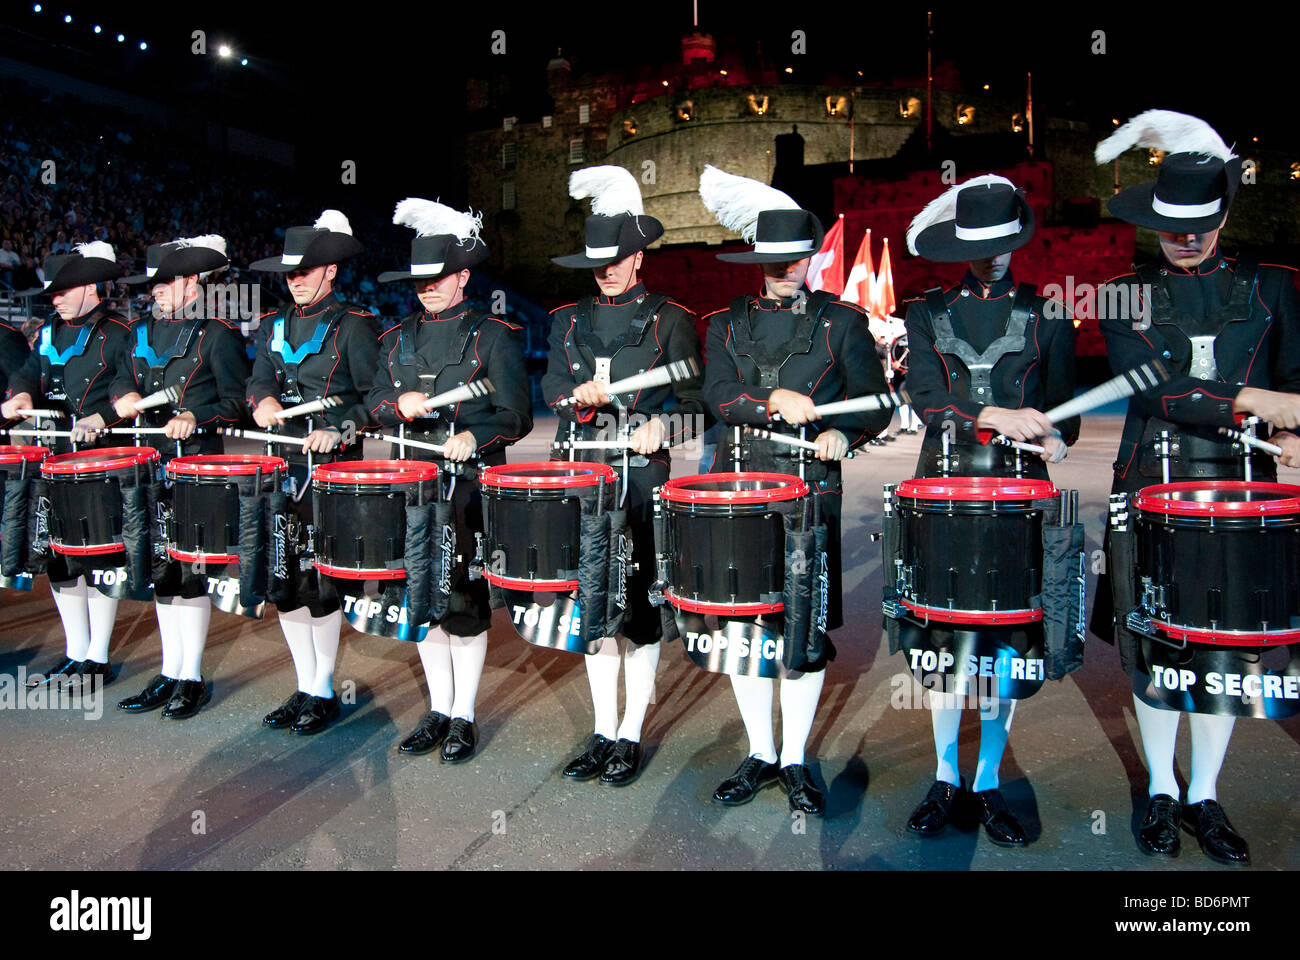 Edinburgh Military Tattoo 2009 Show, Scotland, UK Stock Photo